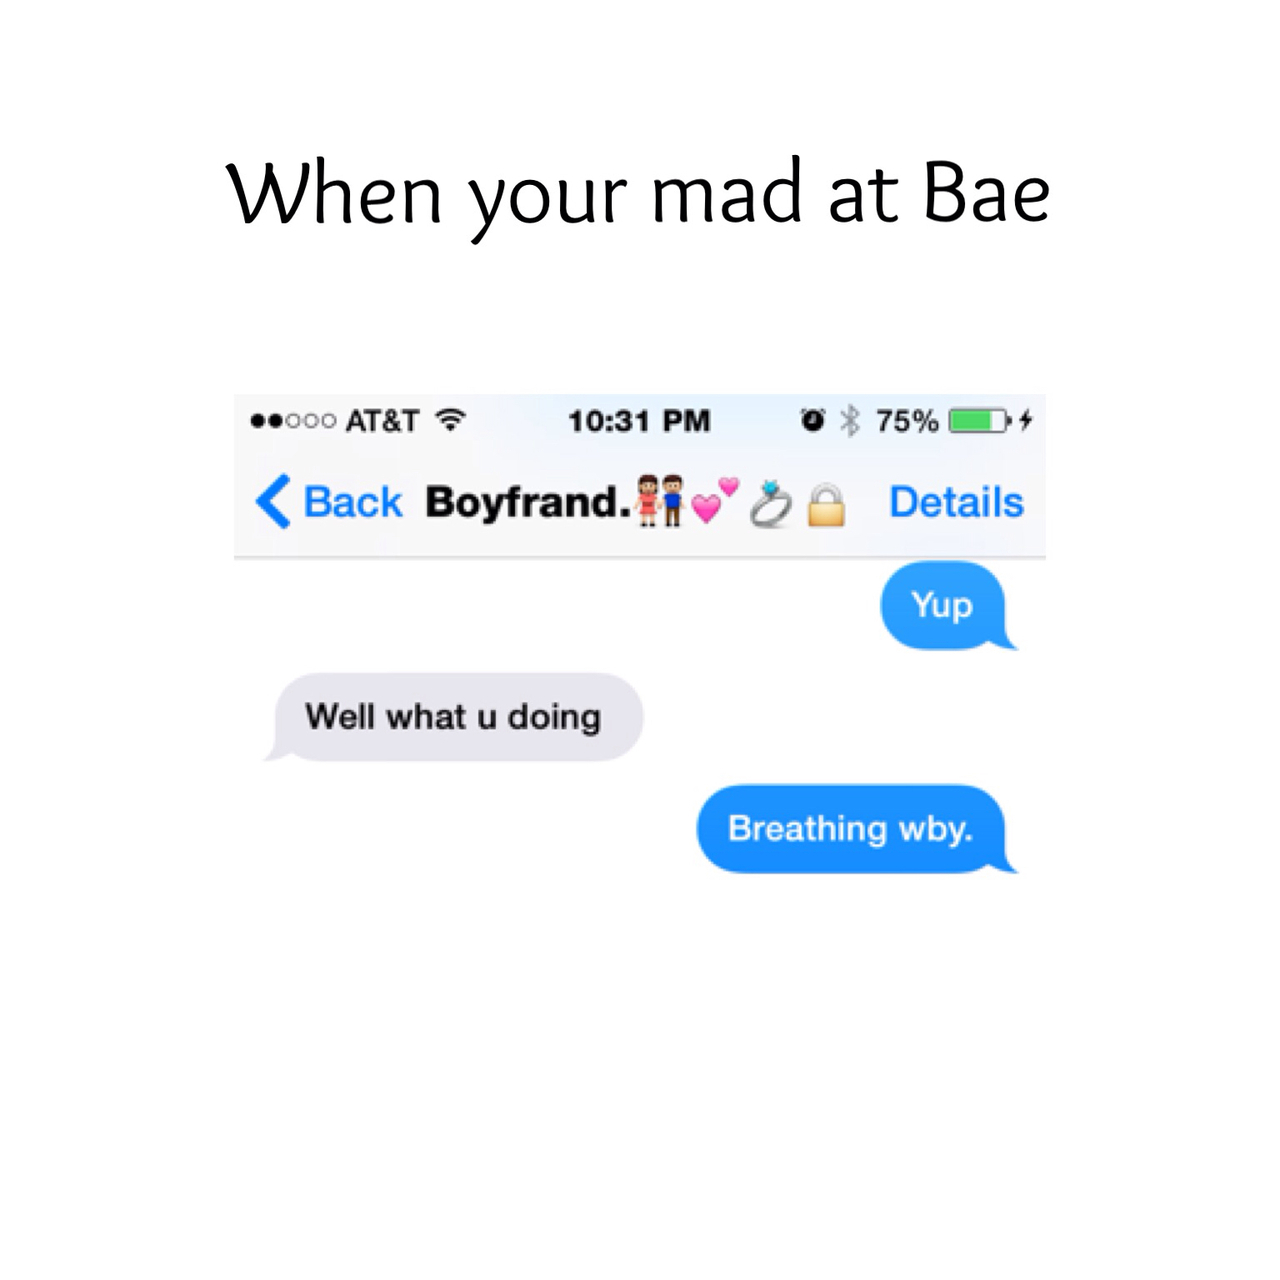 When your mad at bae on We Heart It